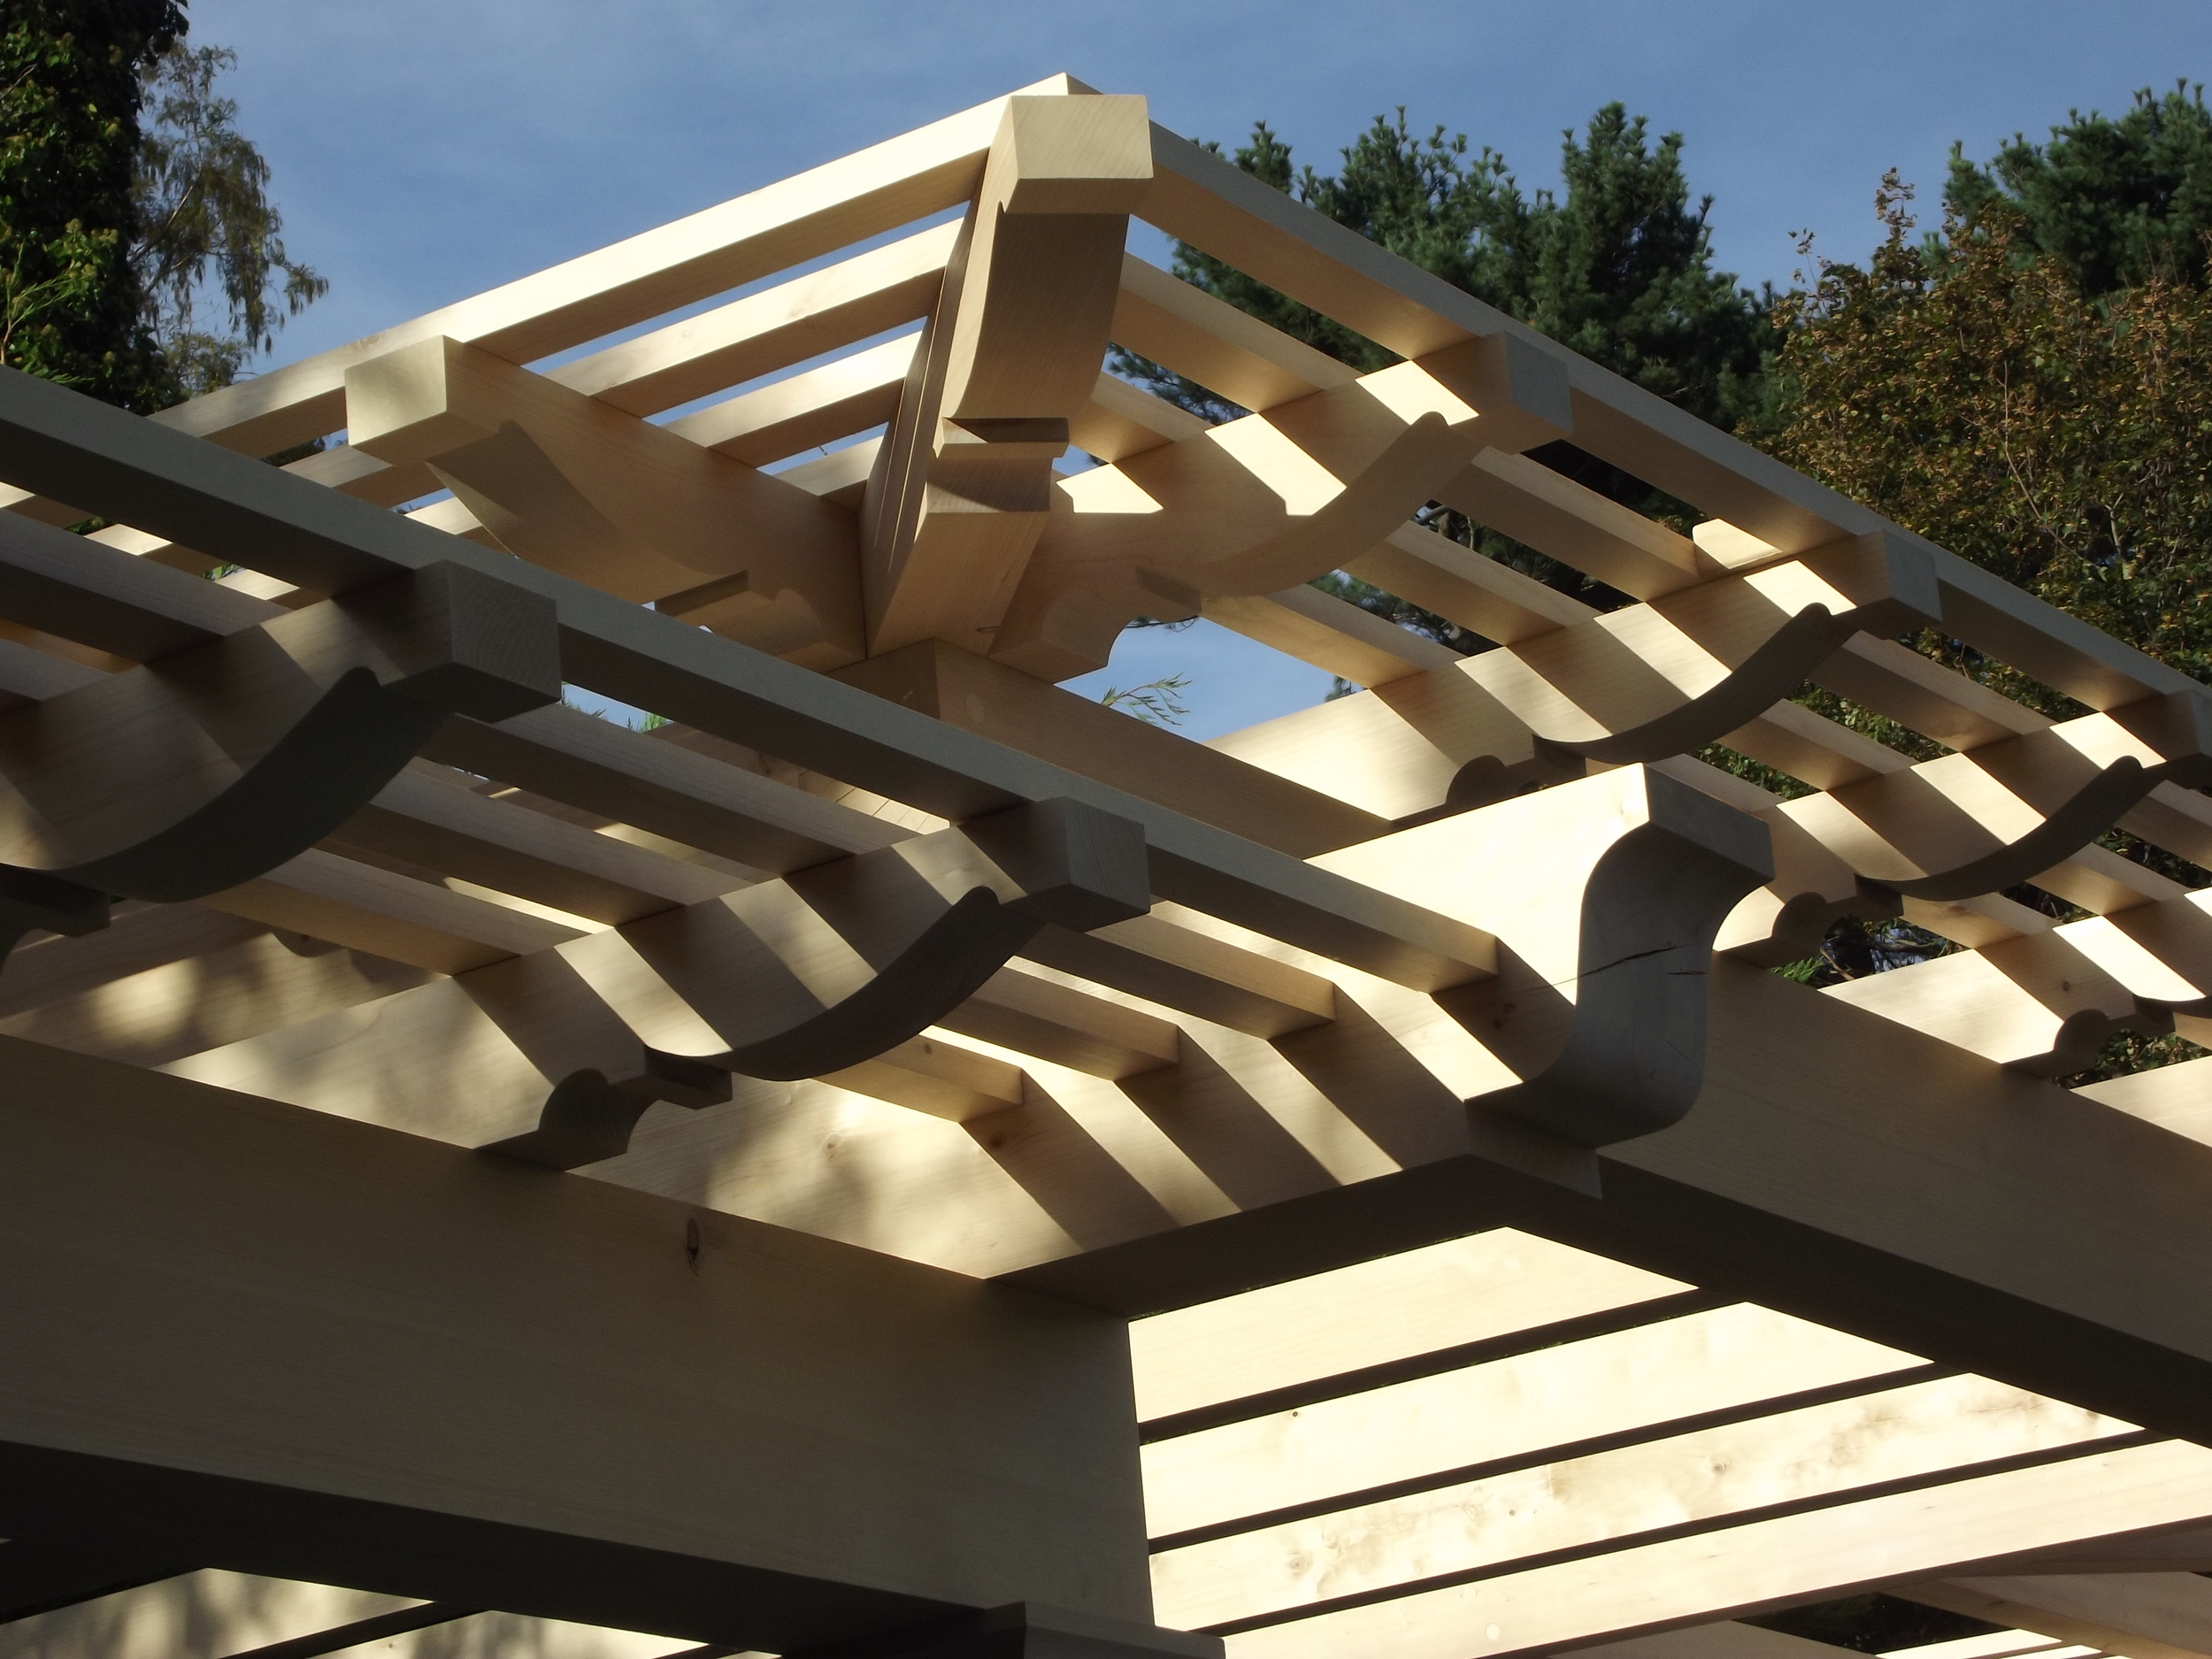 Port Orford cedar pergola